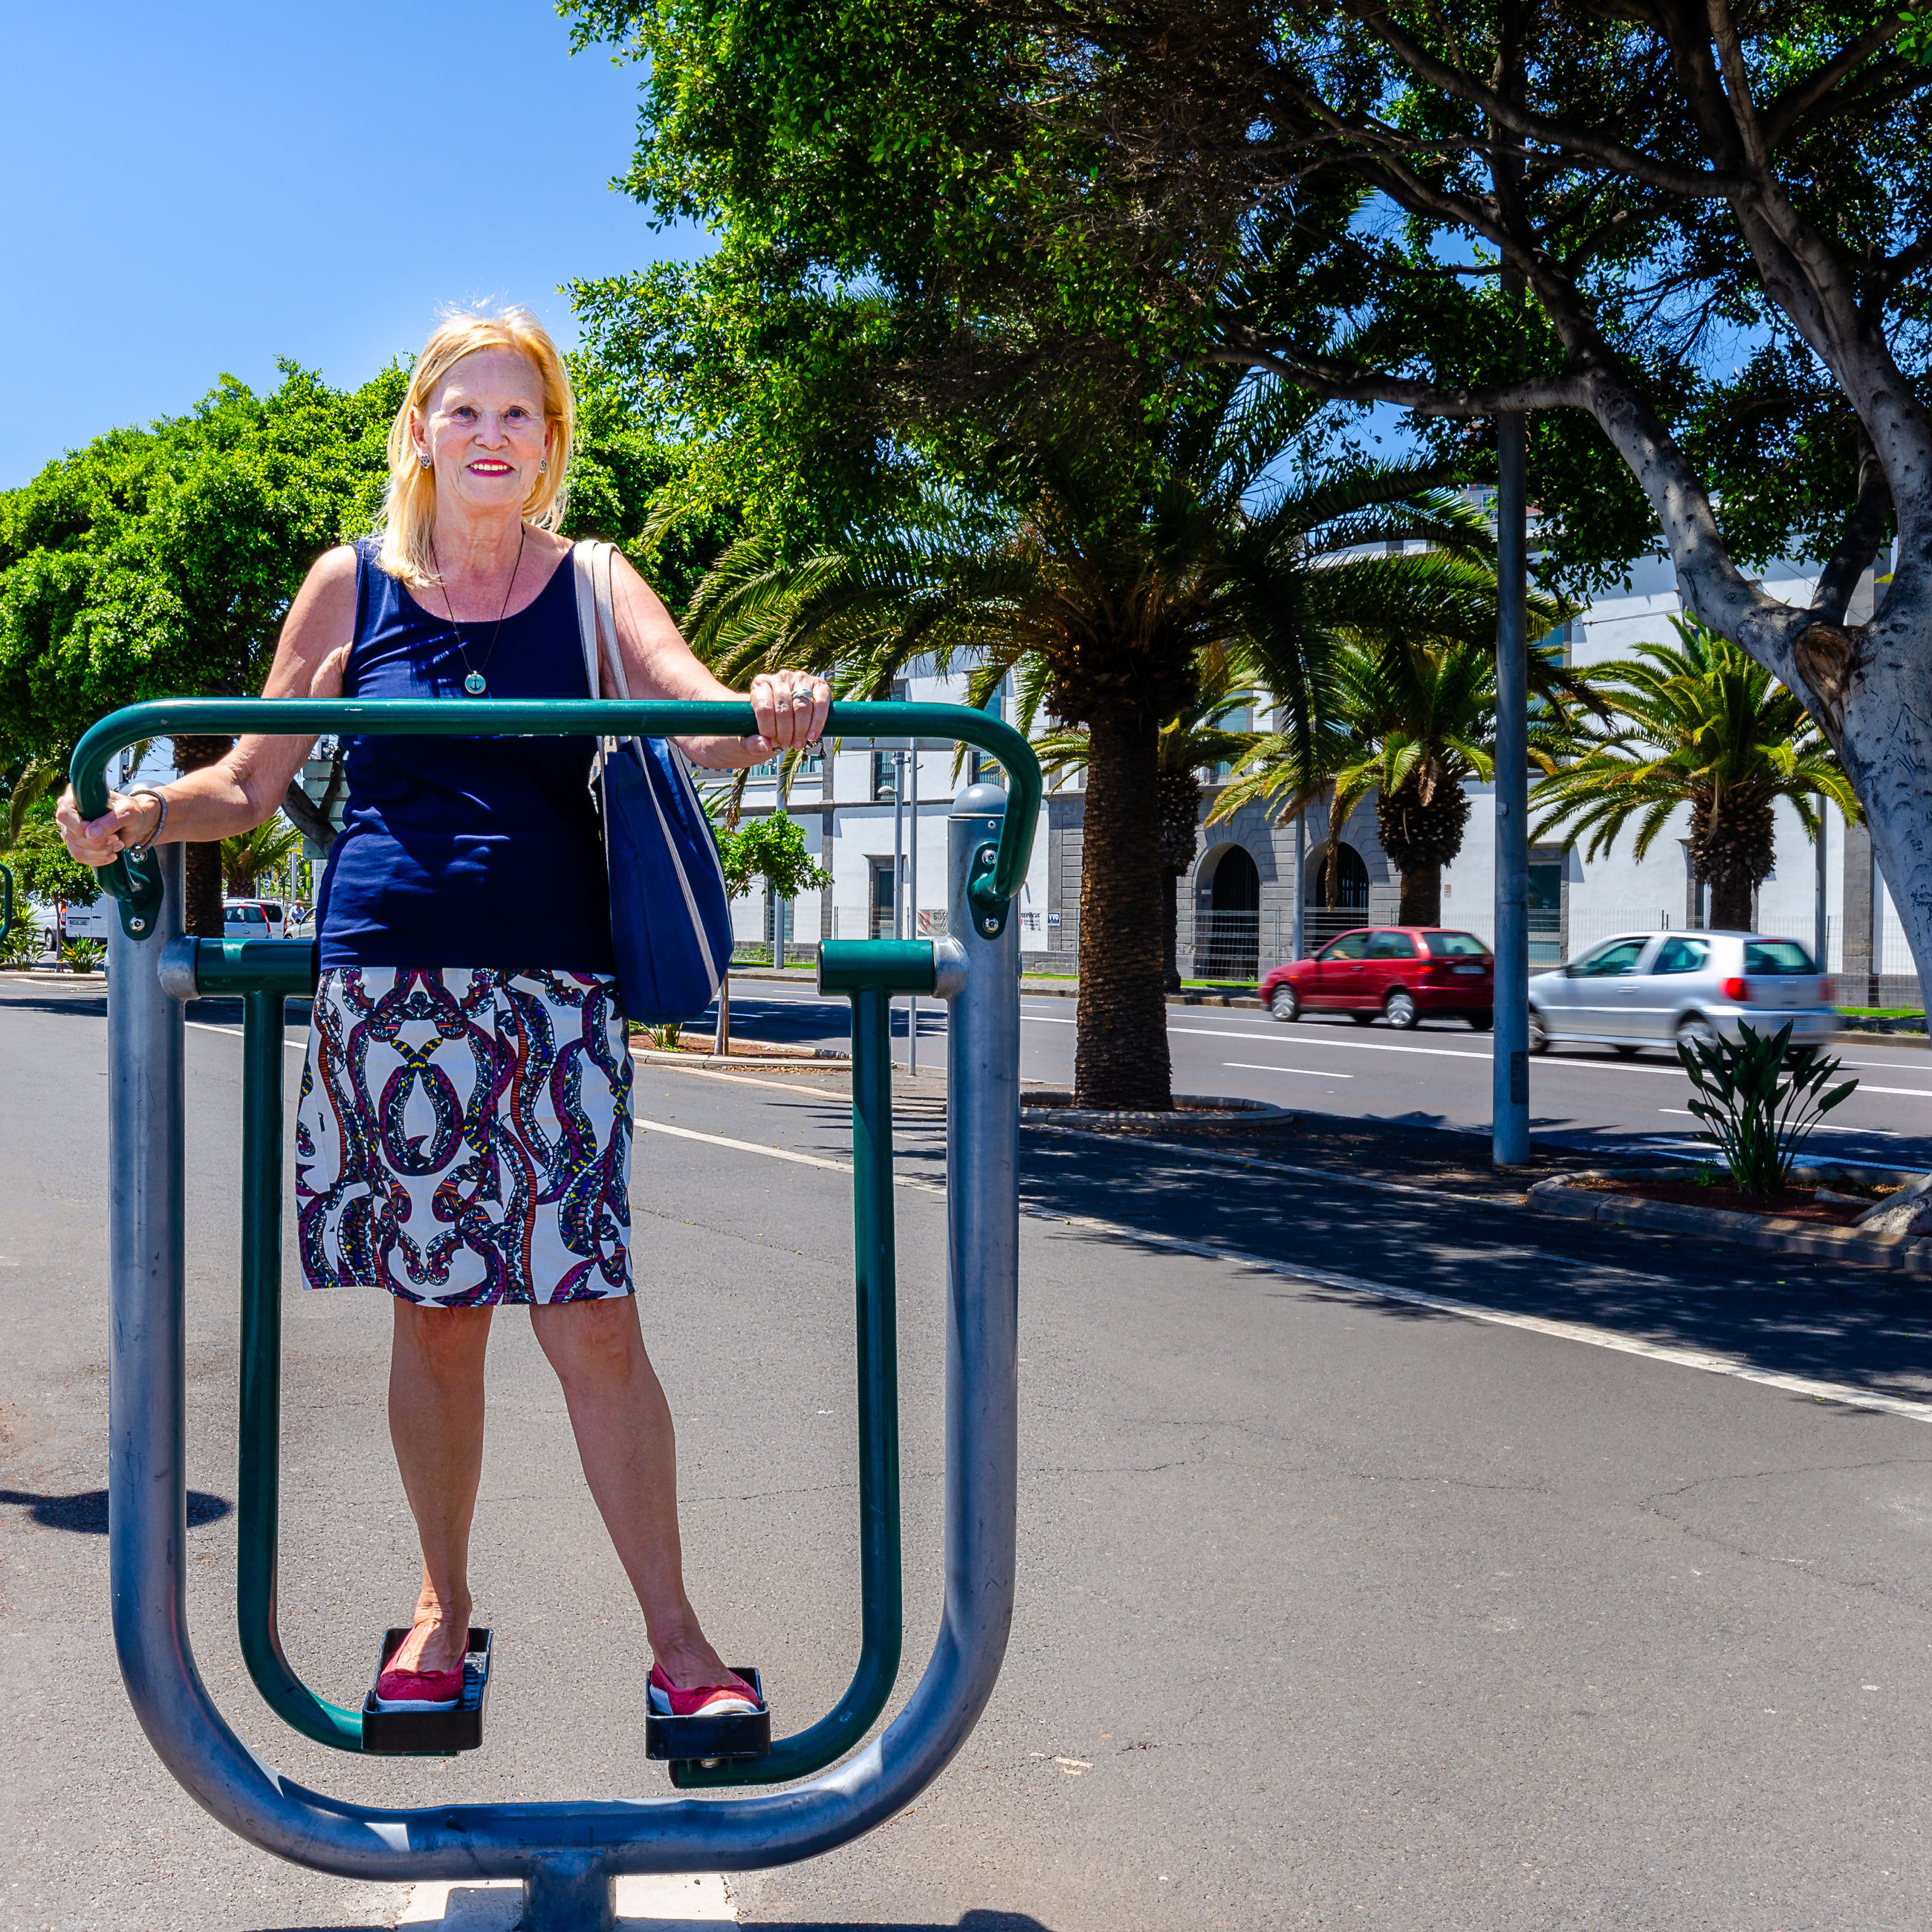 Portrait of woman standing on exercise equipment